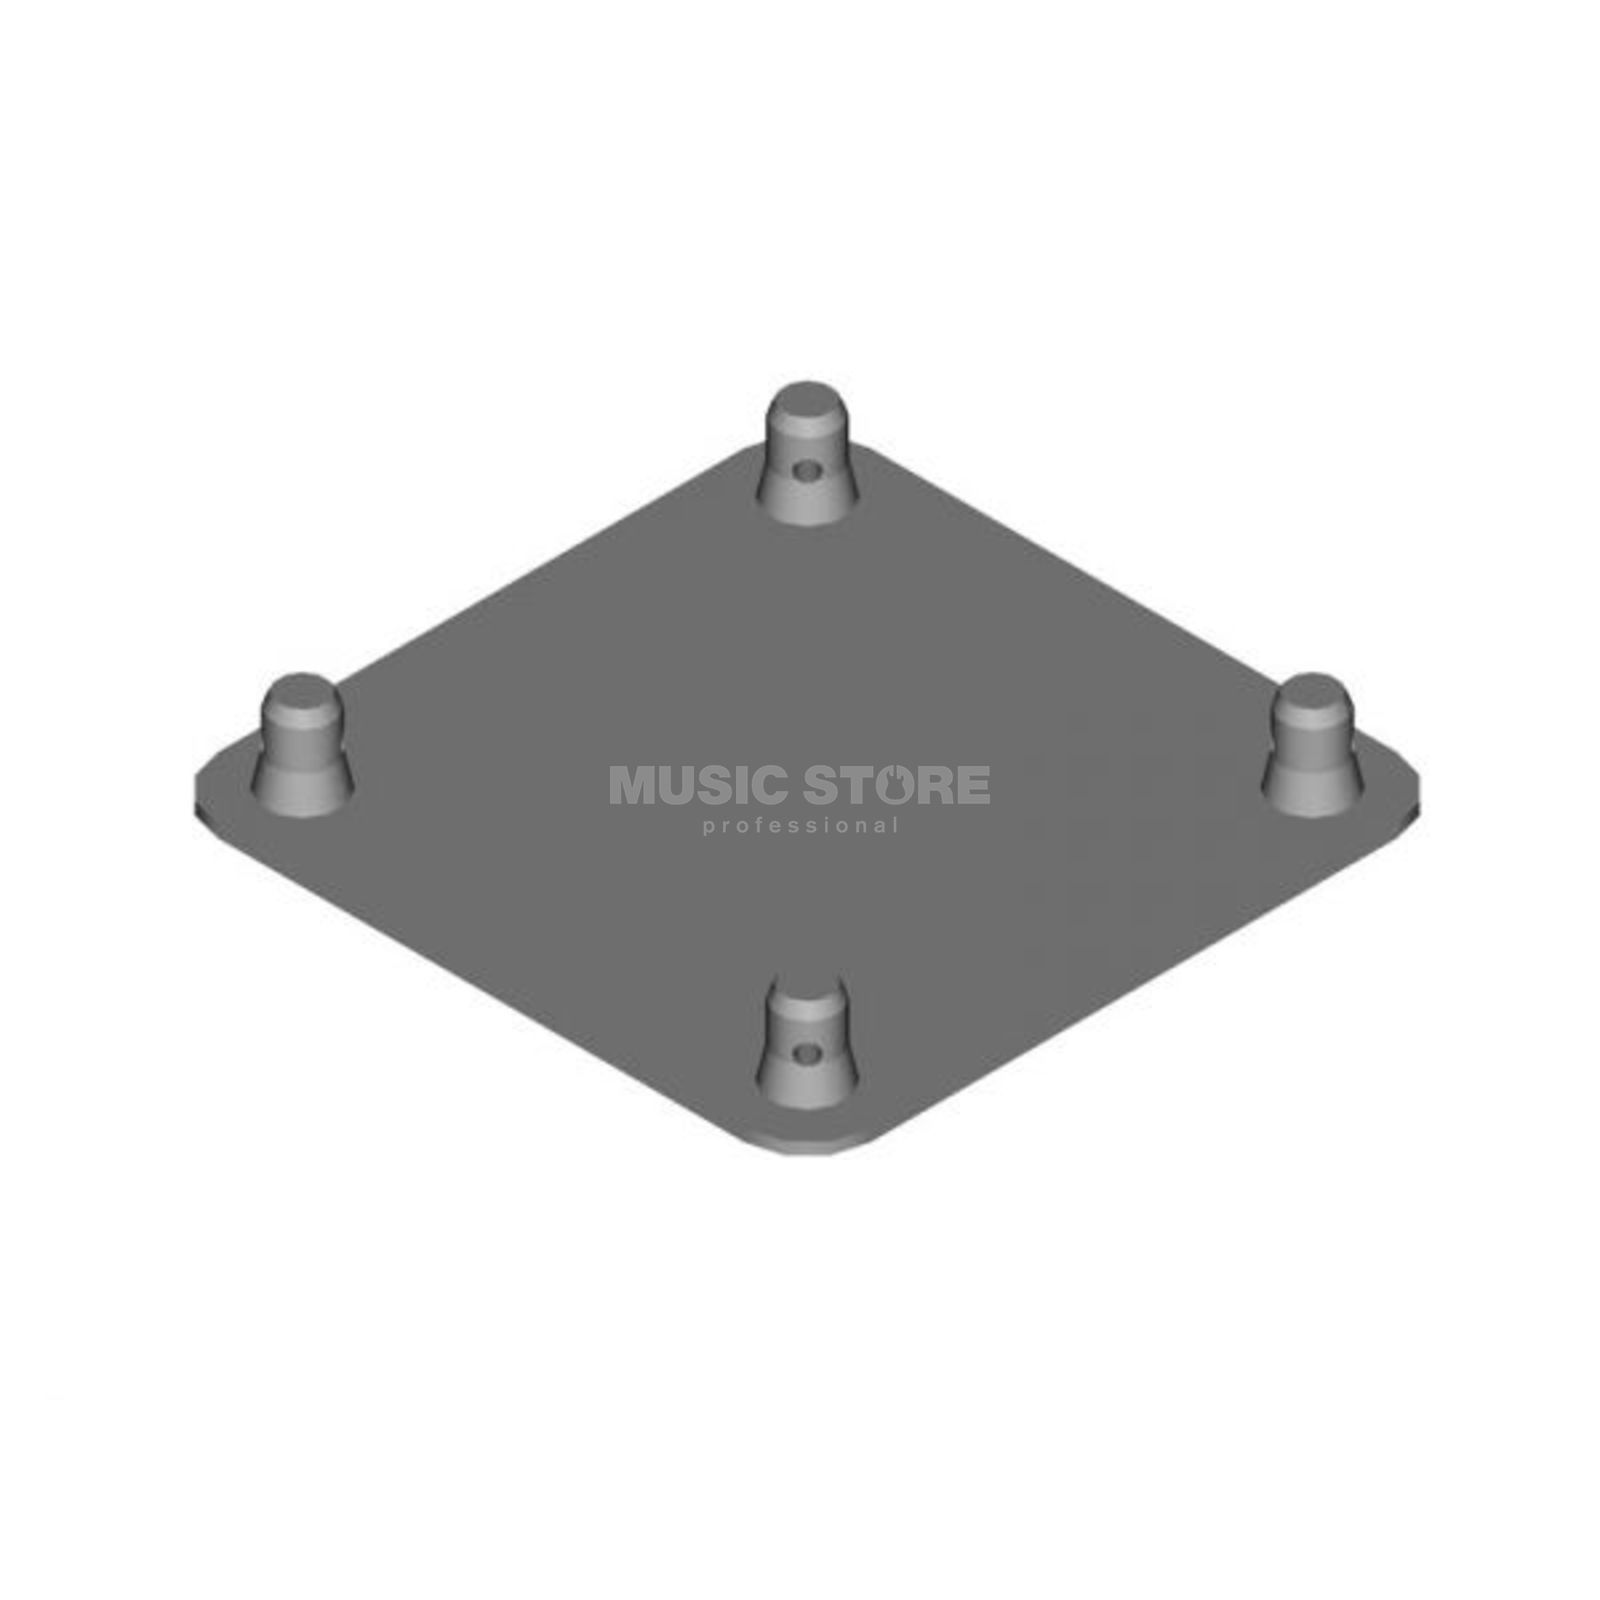 DURATRUSS DT 34 Base Plate for 4-Point Truss Produktbillede